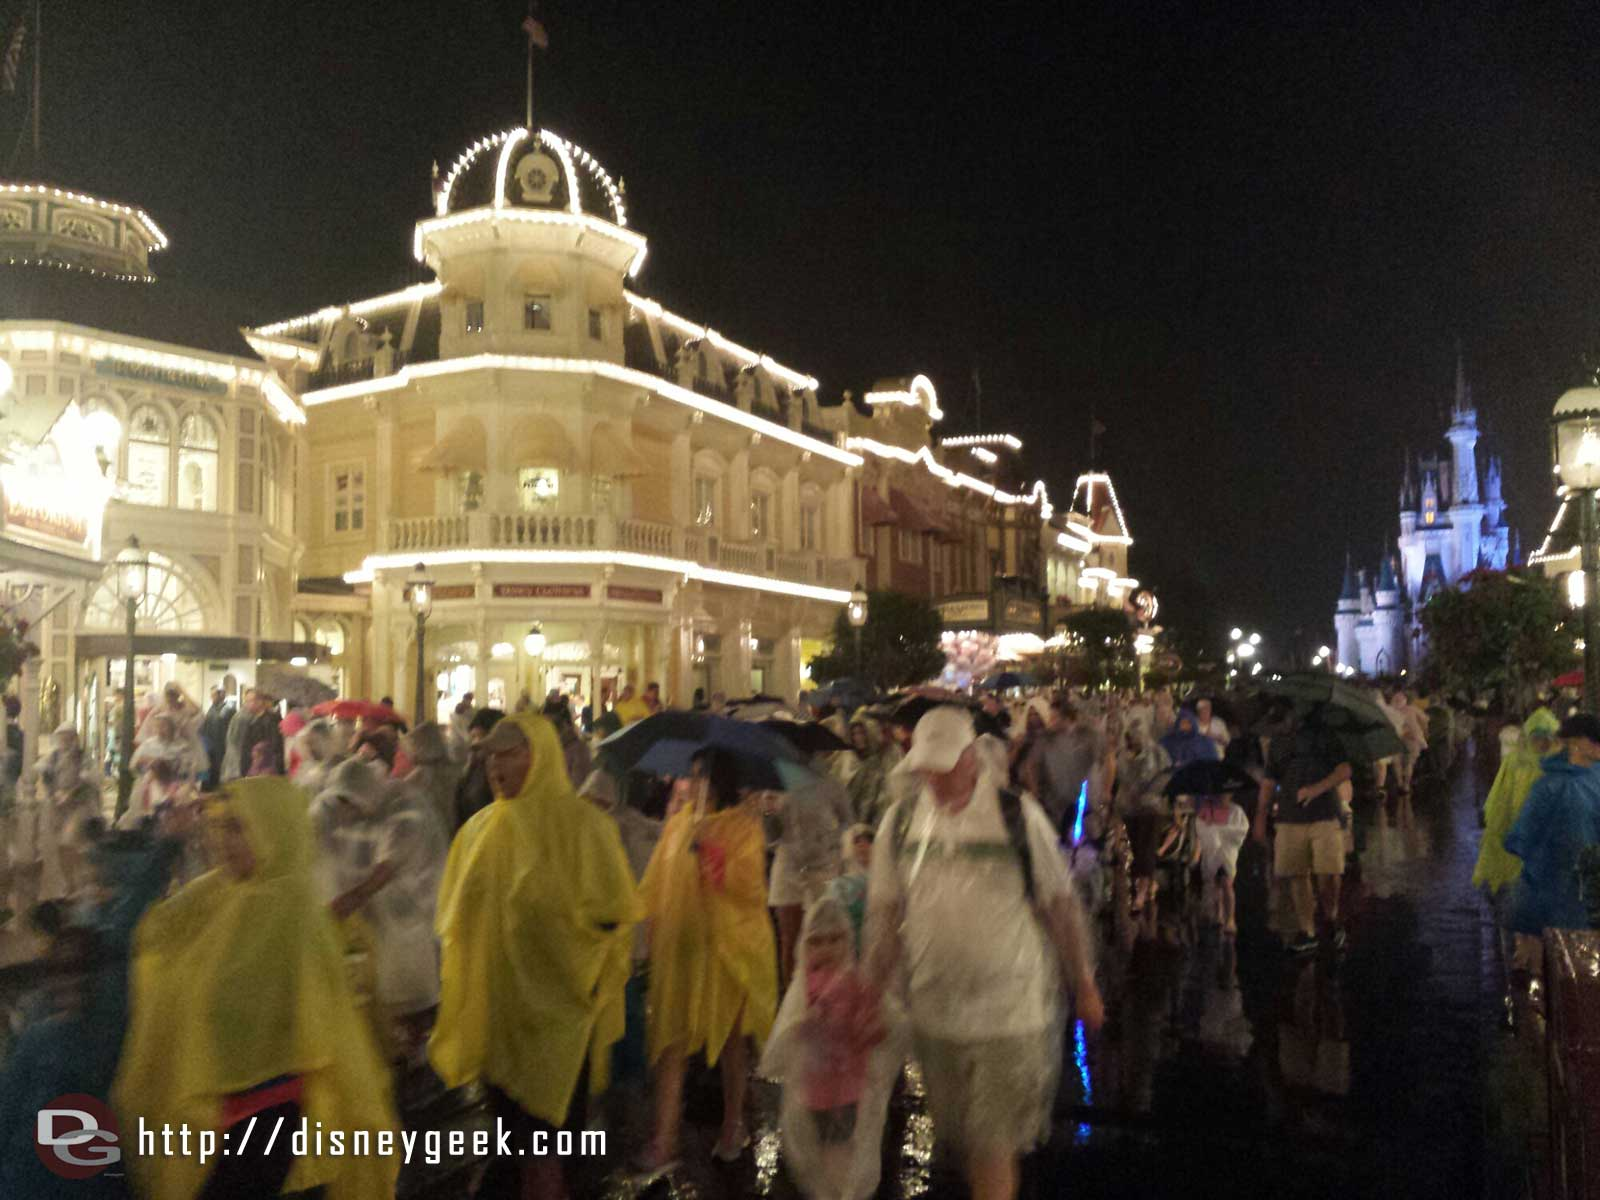 Looks like the majority of guests have had enough of the rain and are leaving.